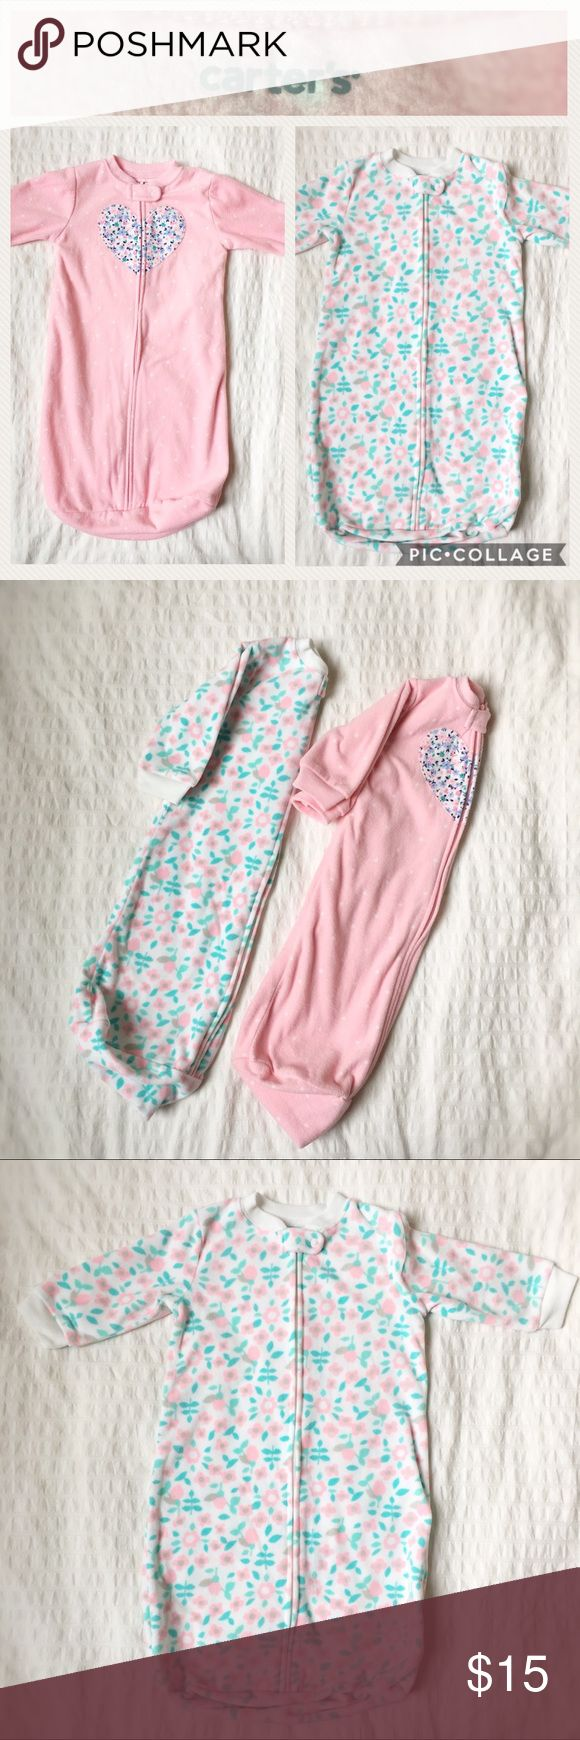 NWOT Fleece Little Sleep Bag Bundle by Carter's Bundle includes two fleece Little Sleep Bags by Carter's.  Sleeps bags feature zip closure with snap at top.  One pink polka dot print with floral heart accent.  One pink and green floral print.  0-9M.  NWOT, washed but never used.  100% polyester. Carter's Accessories